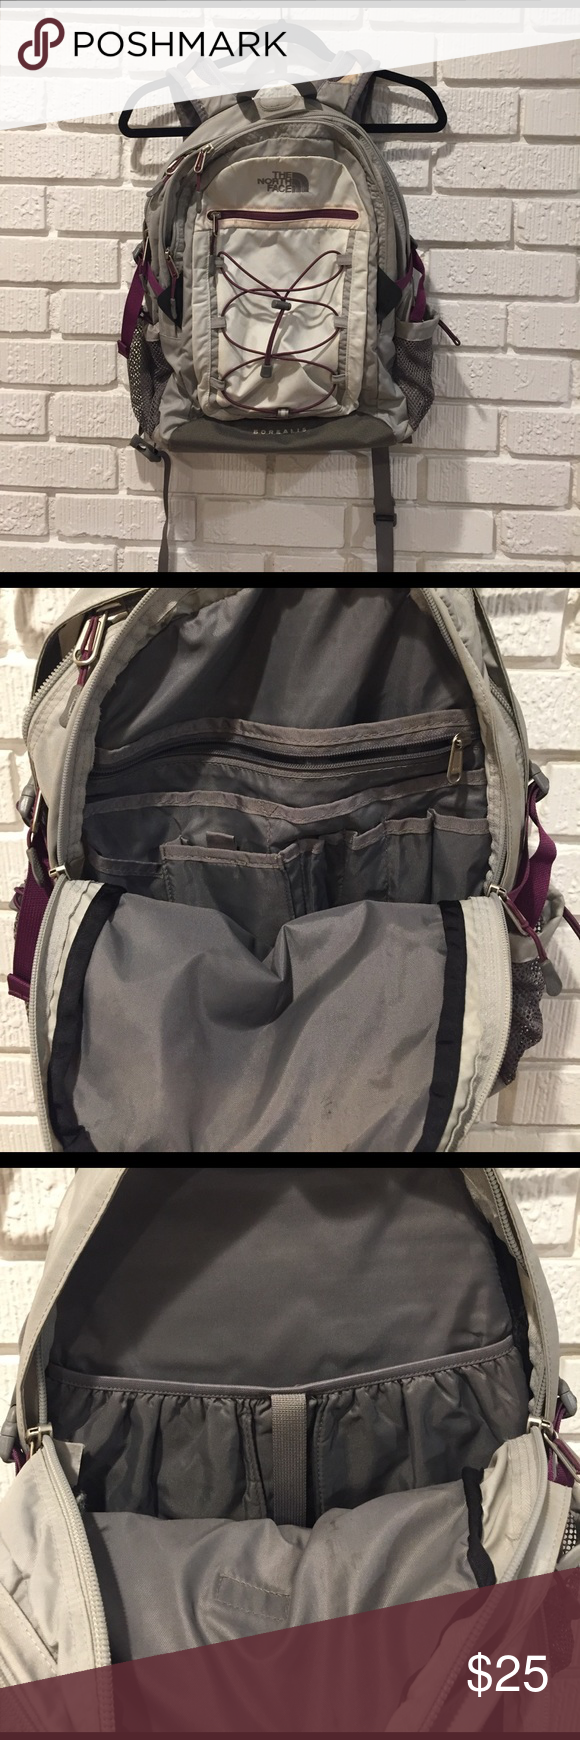 North Face Boraelis Backpack - White & Gray North Face Boraelis Backpack - White & Gray with plum accents North Face Bags Backpacks